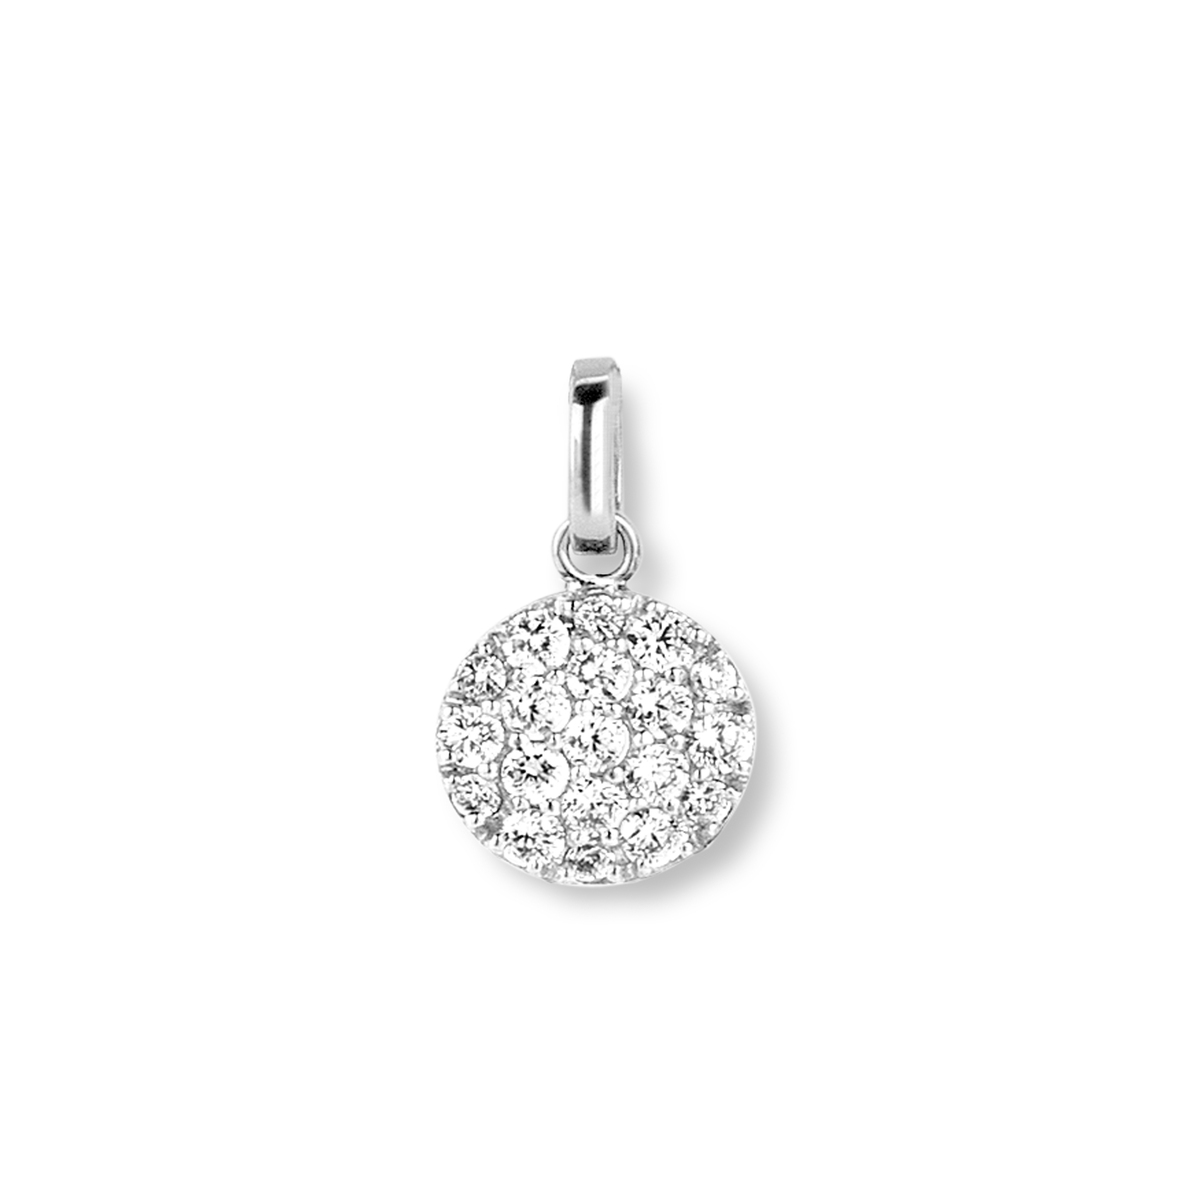 eolo pendant in white gold